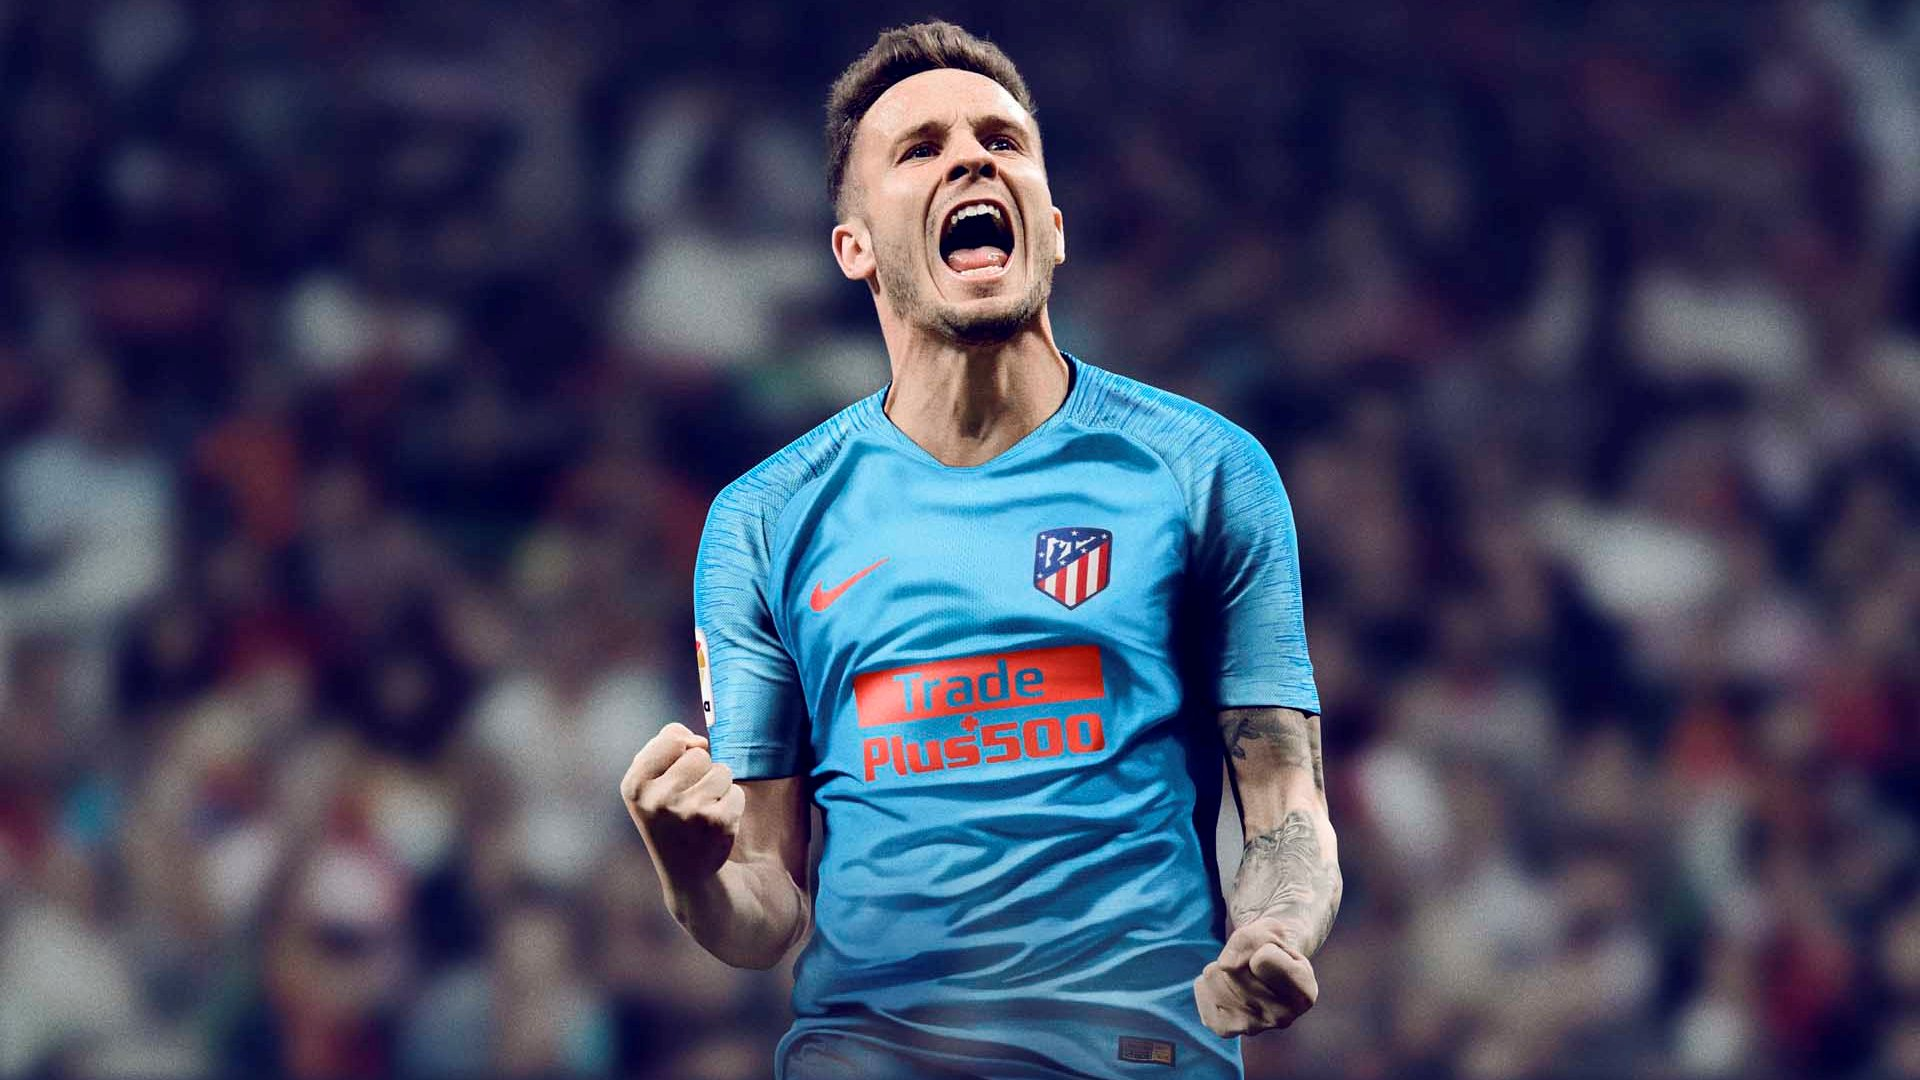 Atletico Madrid Away Kit 2018/19